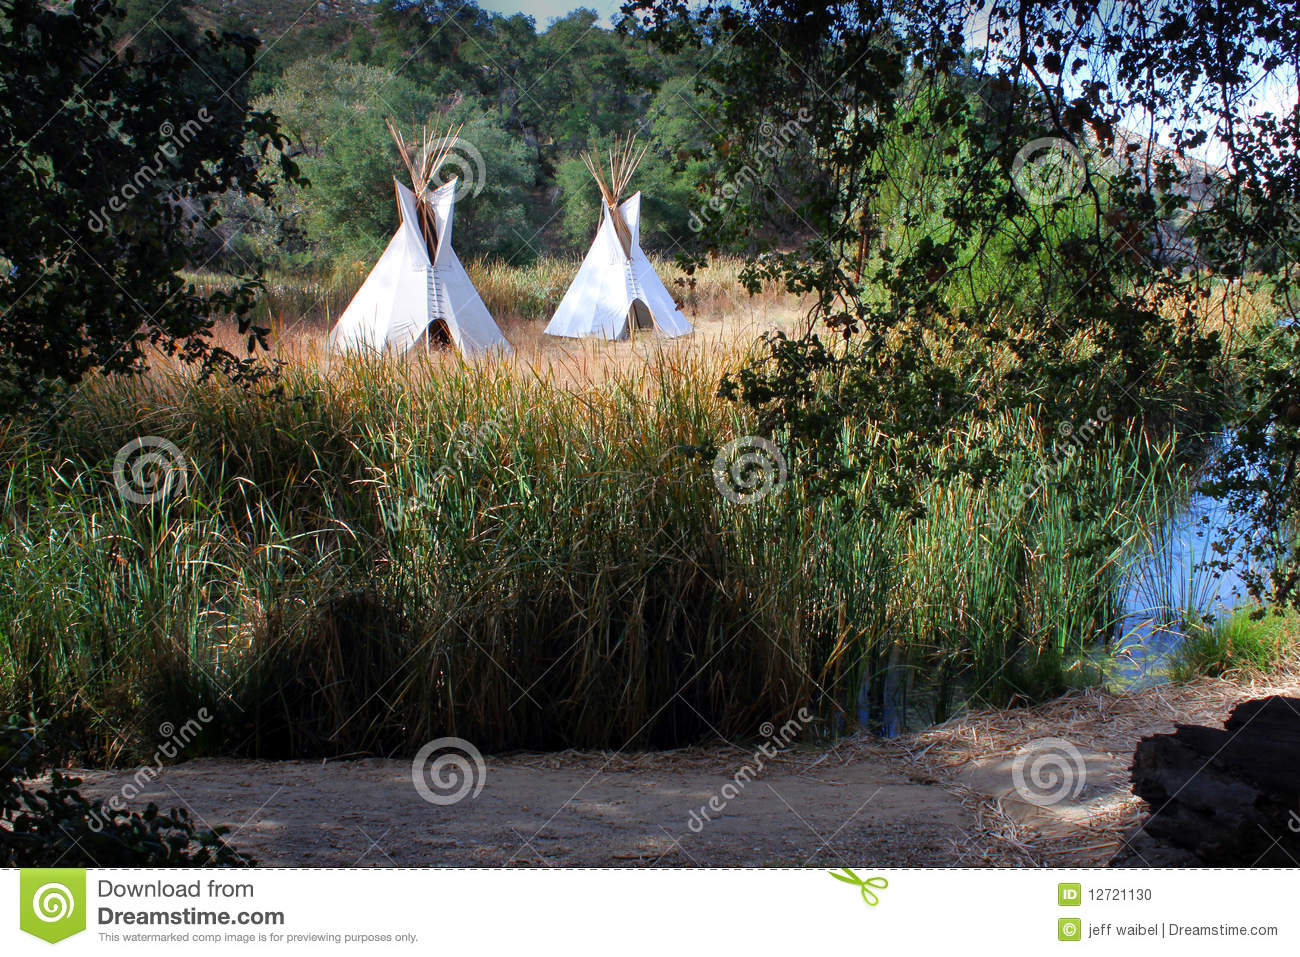 Teepees in Western setting